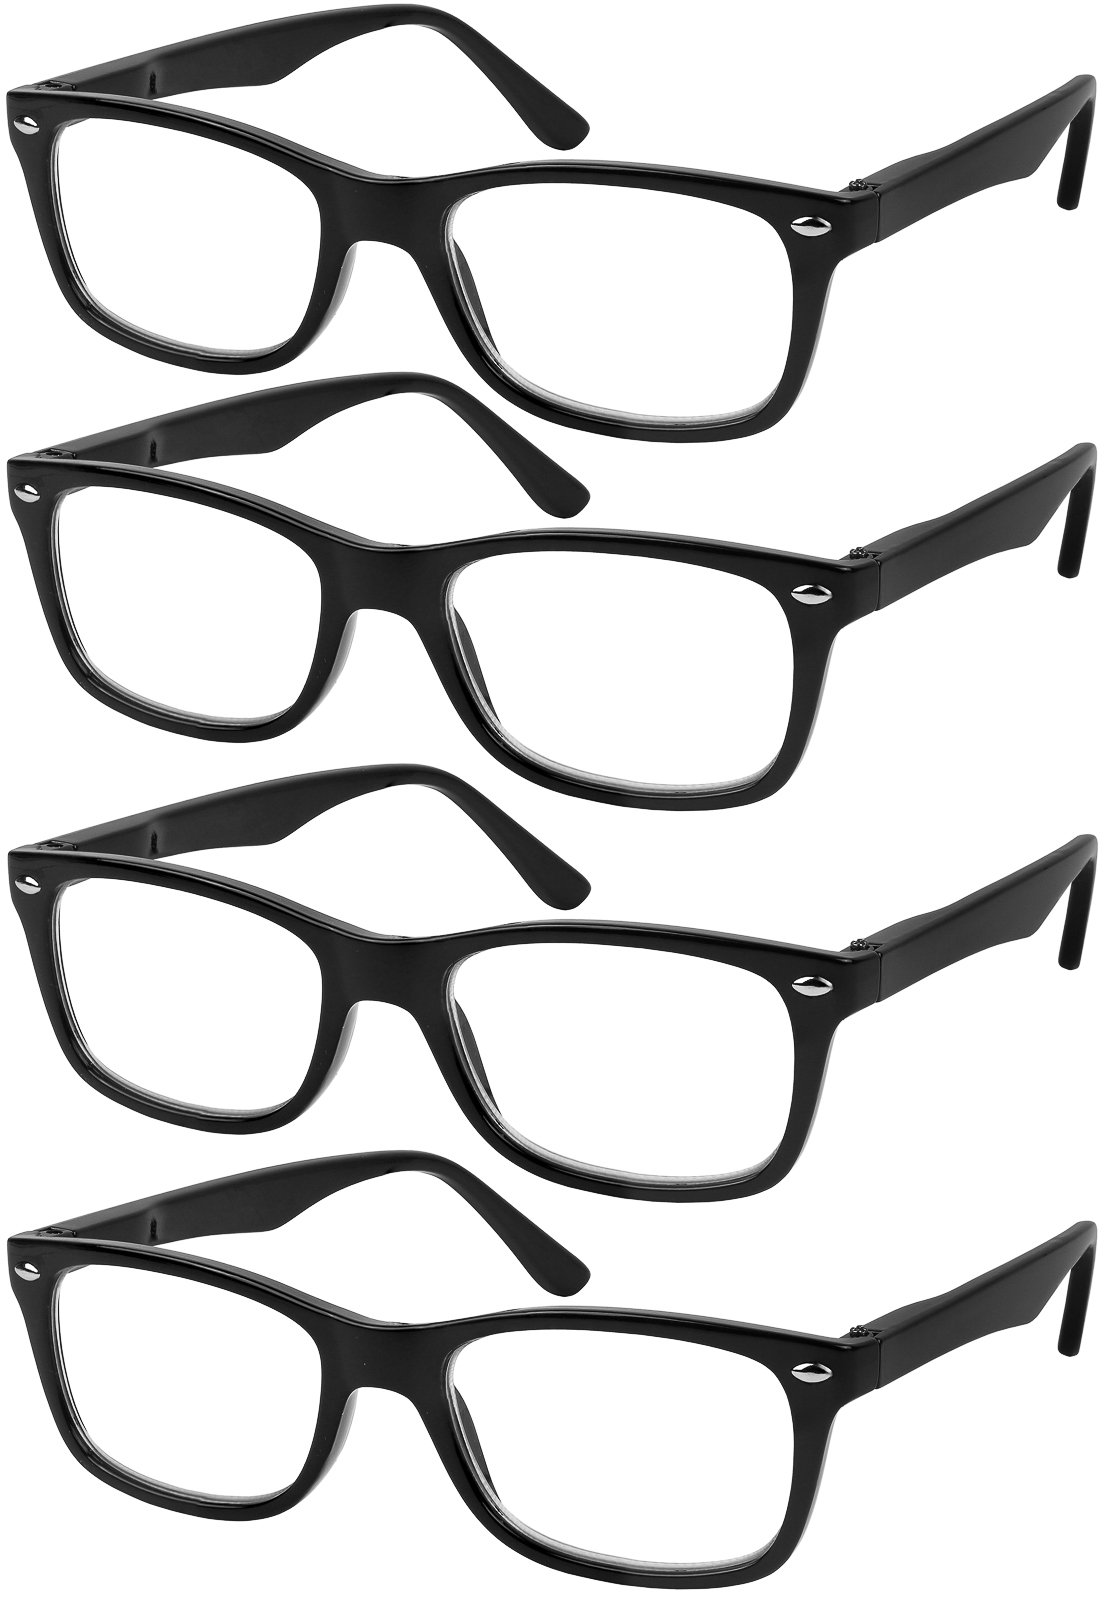 Reading Glasses Set of 4 Black Quality Readers Spring Hinge Glasses for Reading for Men and Women +2.5 by Success Eyewear